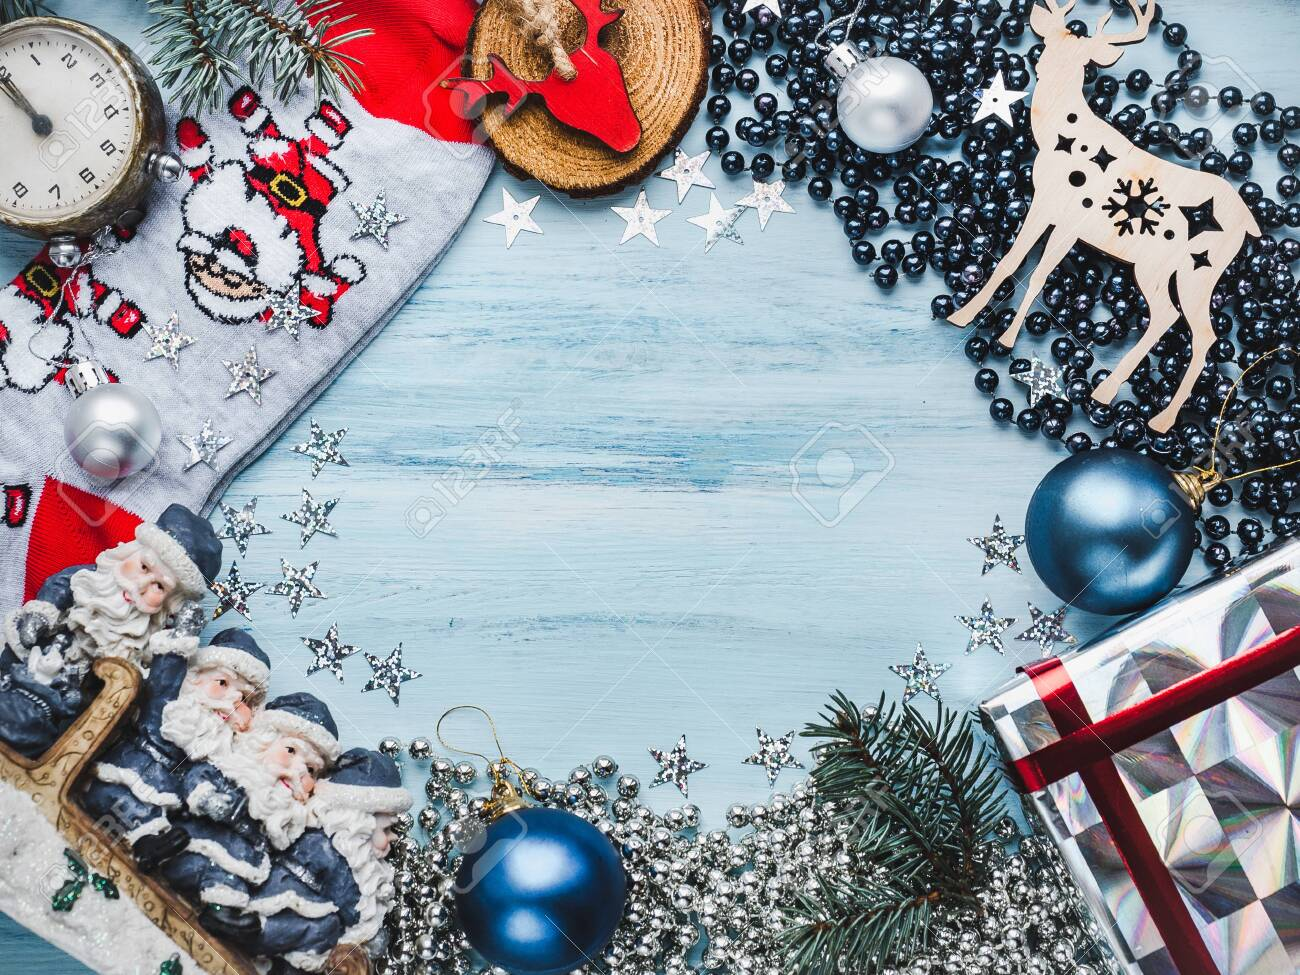 Christmas View Decoration 2020 Merry Christmas And Happy New Year 2020. Beautiful Card With